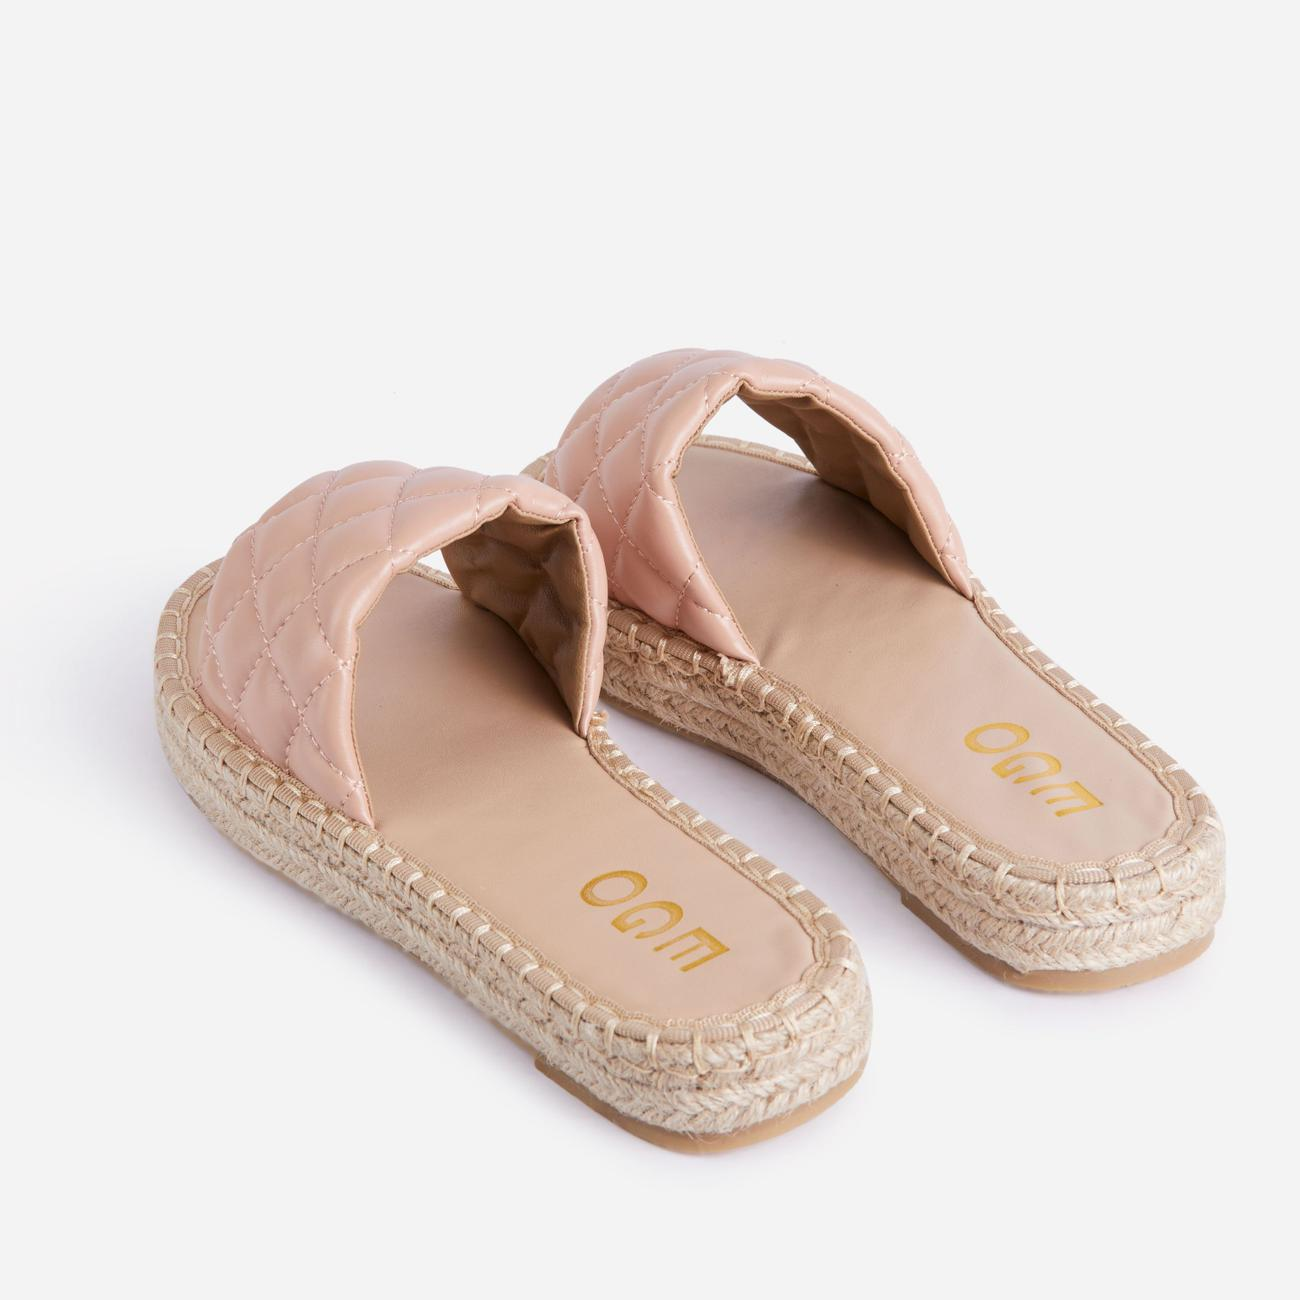 Aquarius Quilted Espadrille Flat Slider Sandal In Nude Faux Leather Image 3